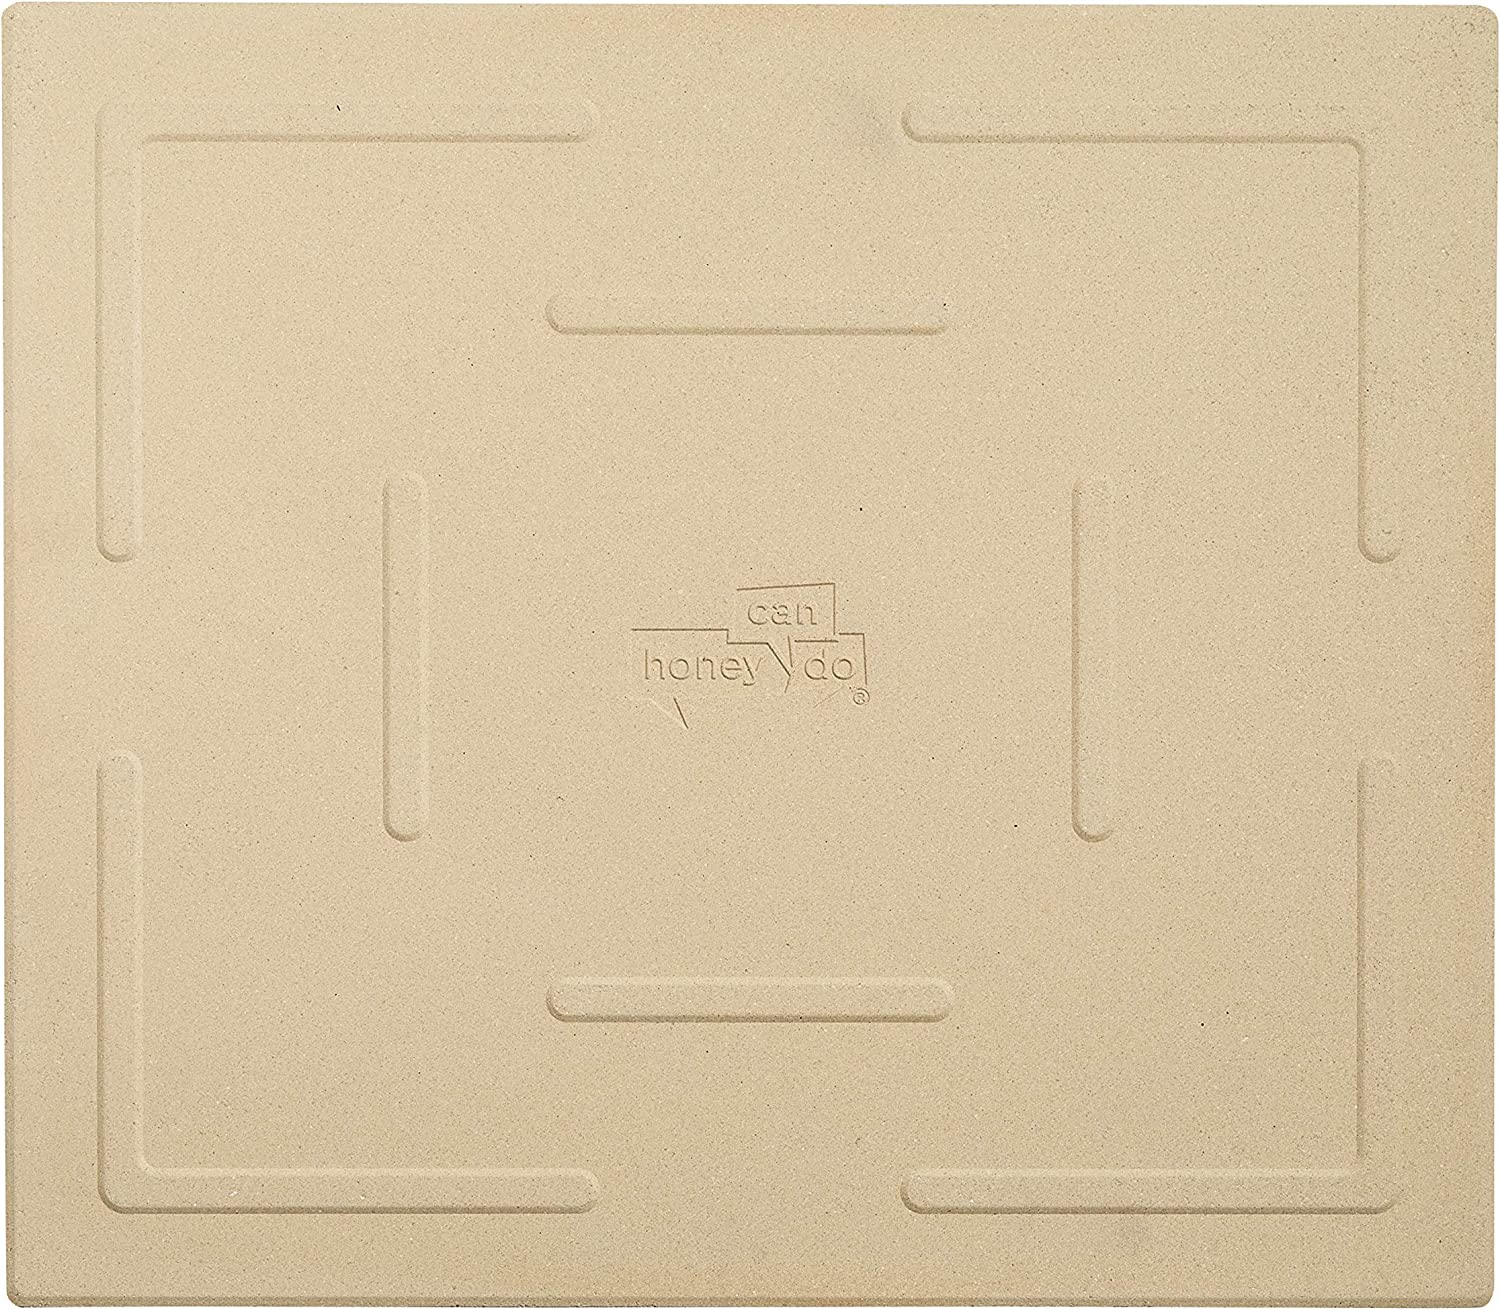 Honey-Can-Do Oven Rectangular Pizza Stone: Pizza Stones: Kitchen & Dining